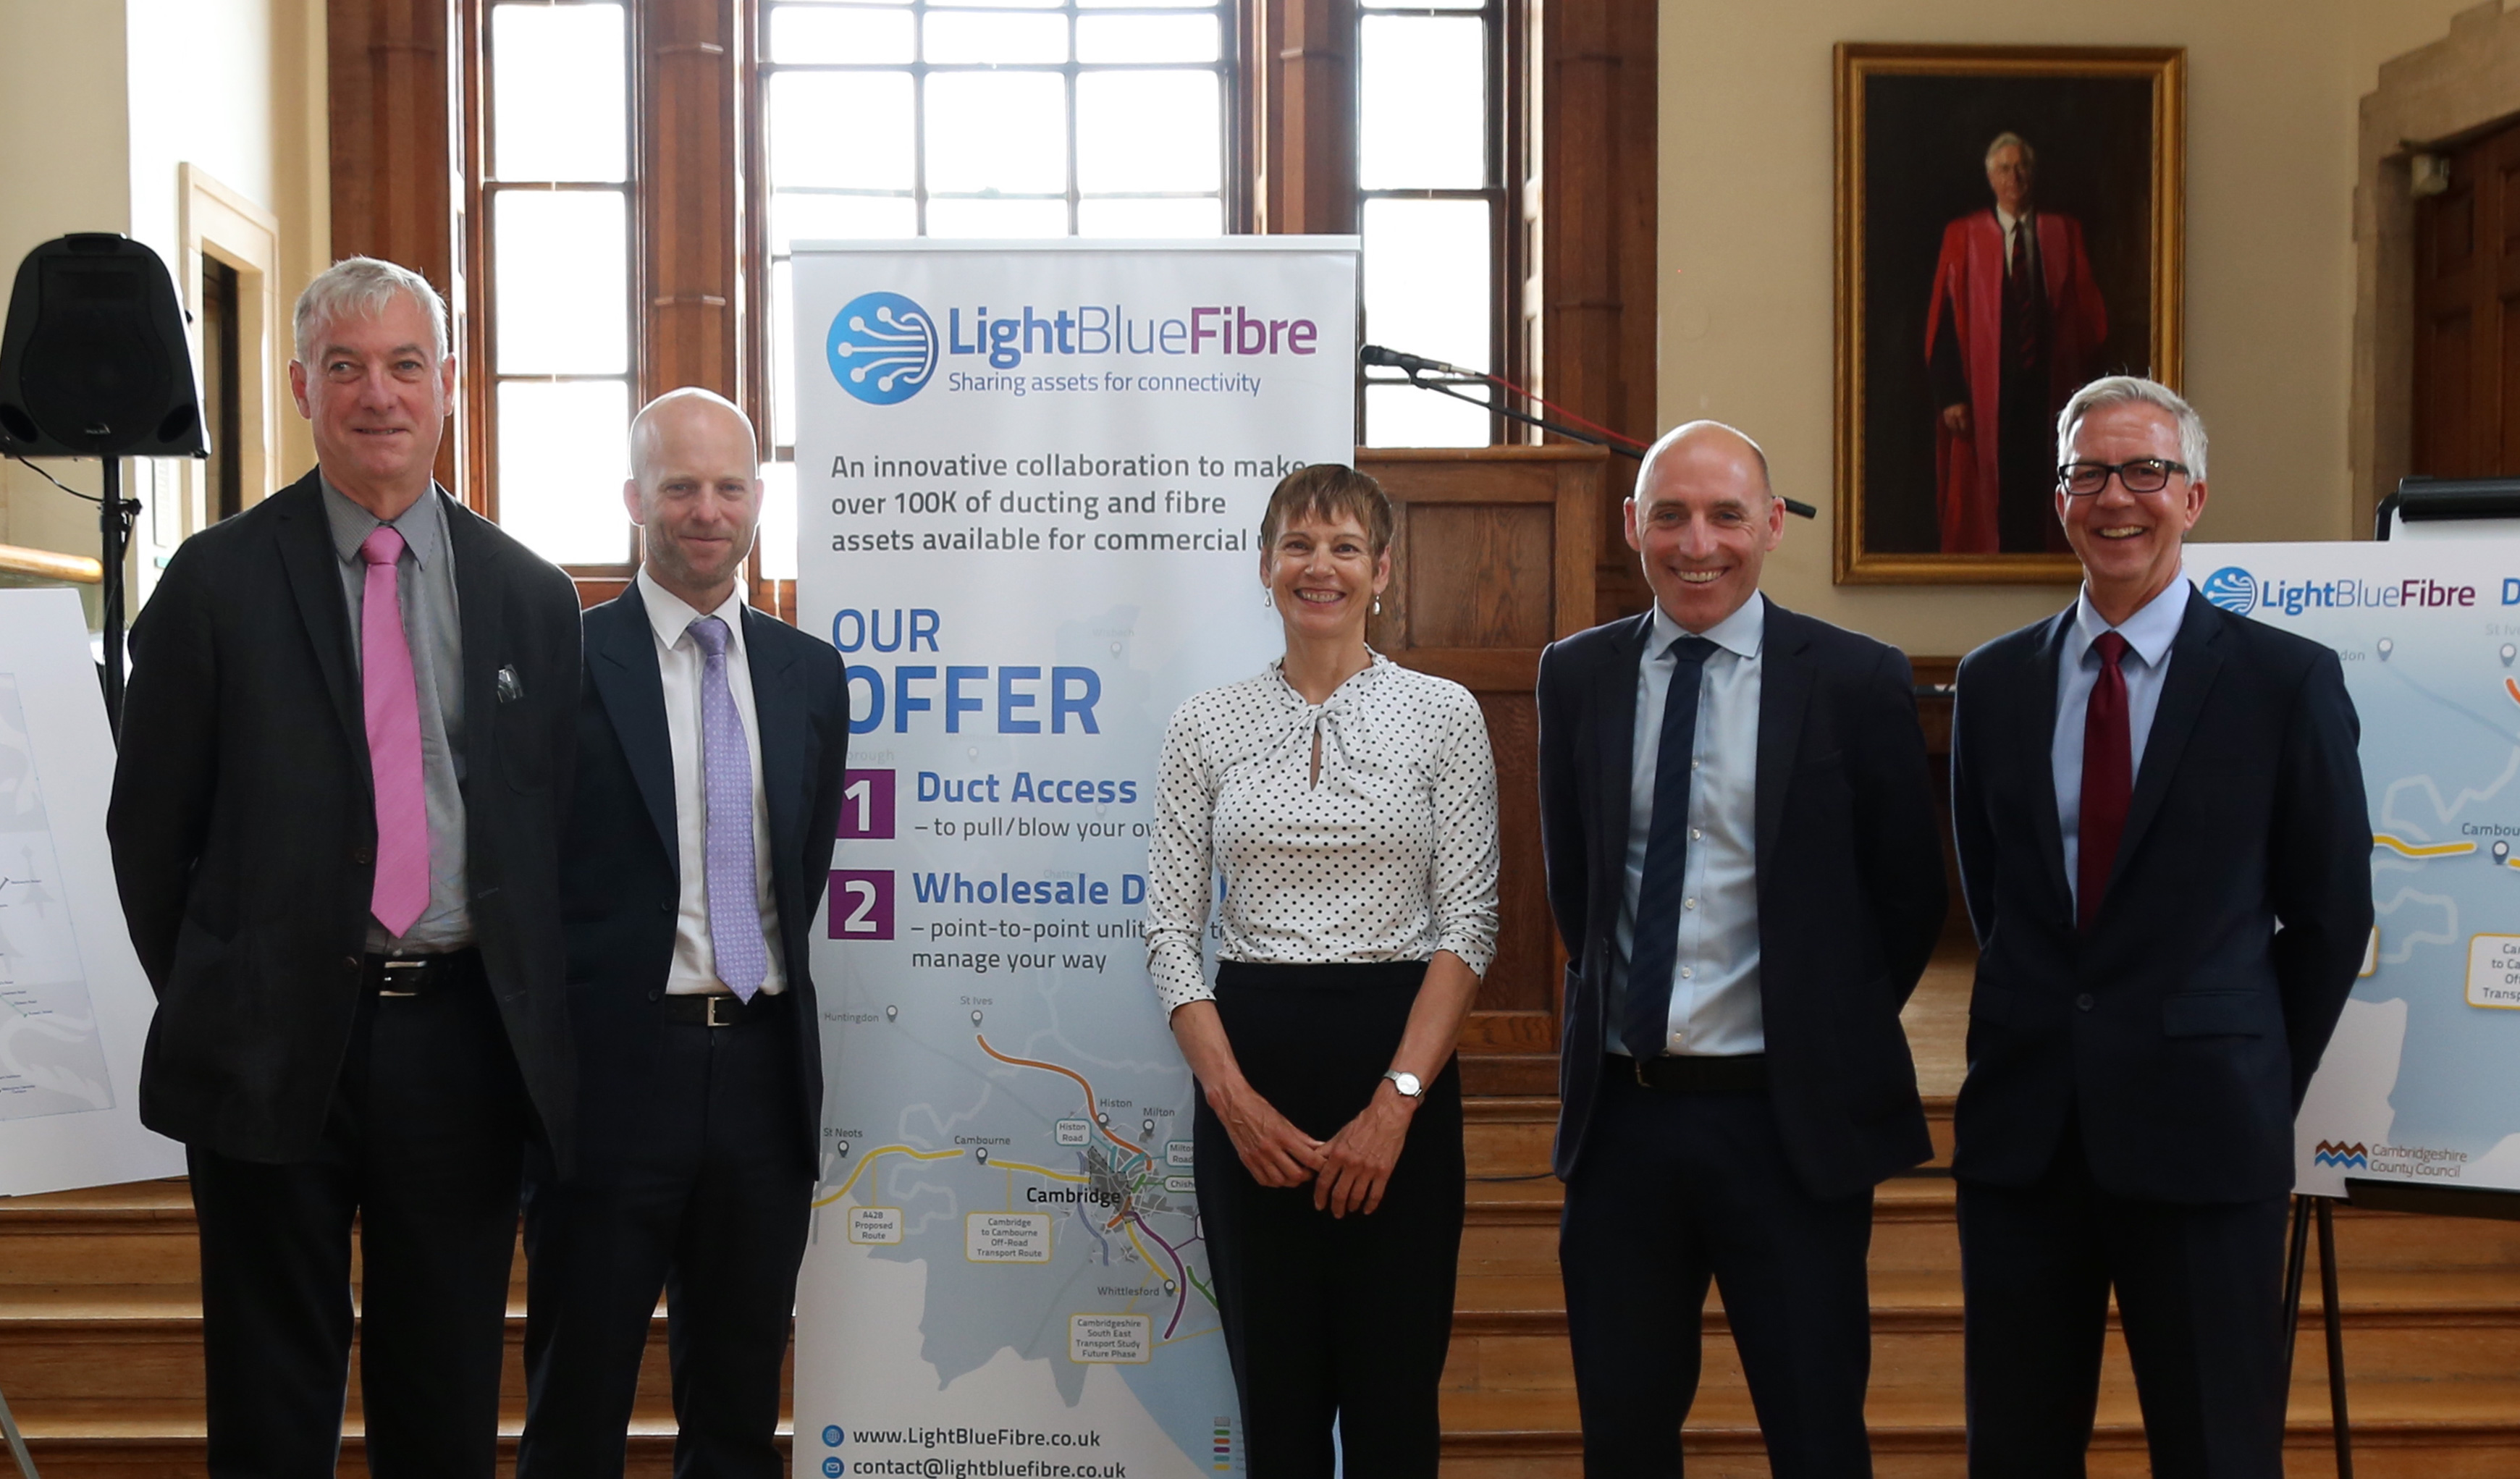 Light Blue Fibre leads the way for full fibre connectivity in Cambridge and beyond